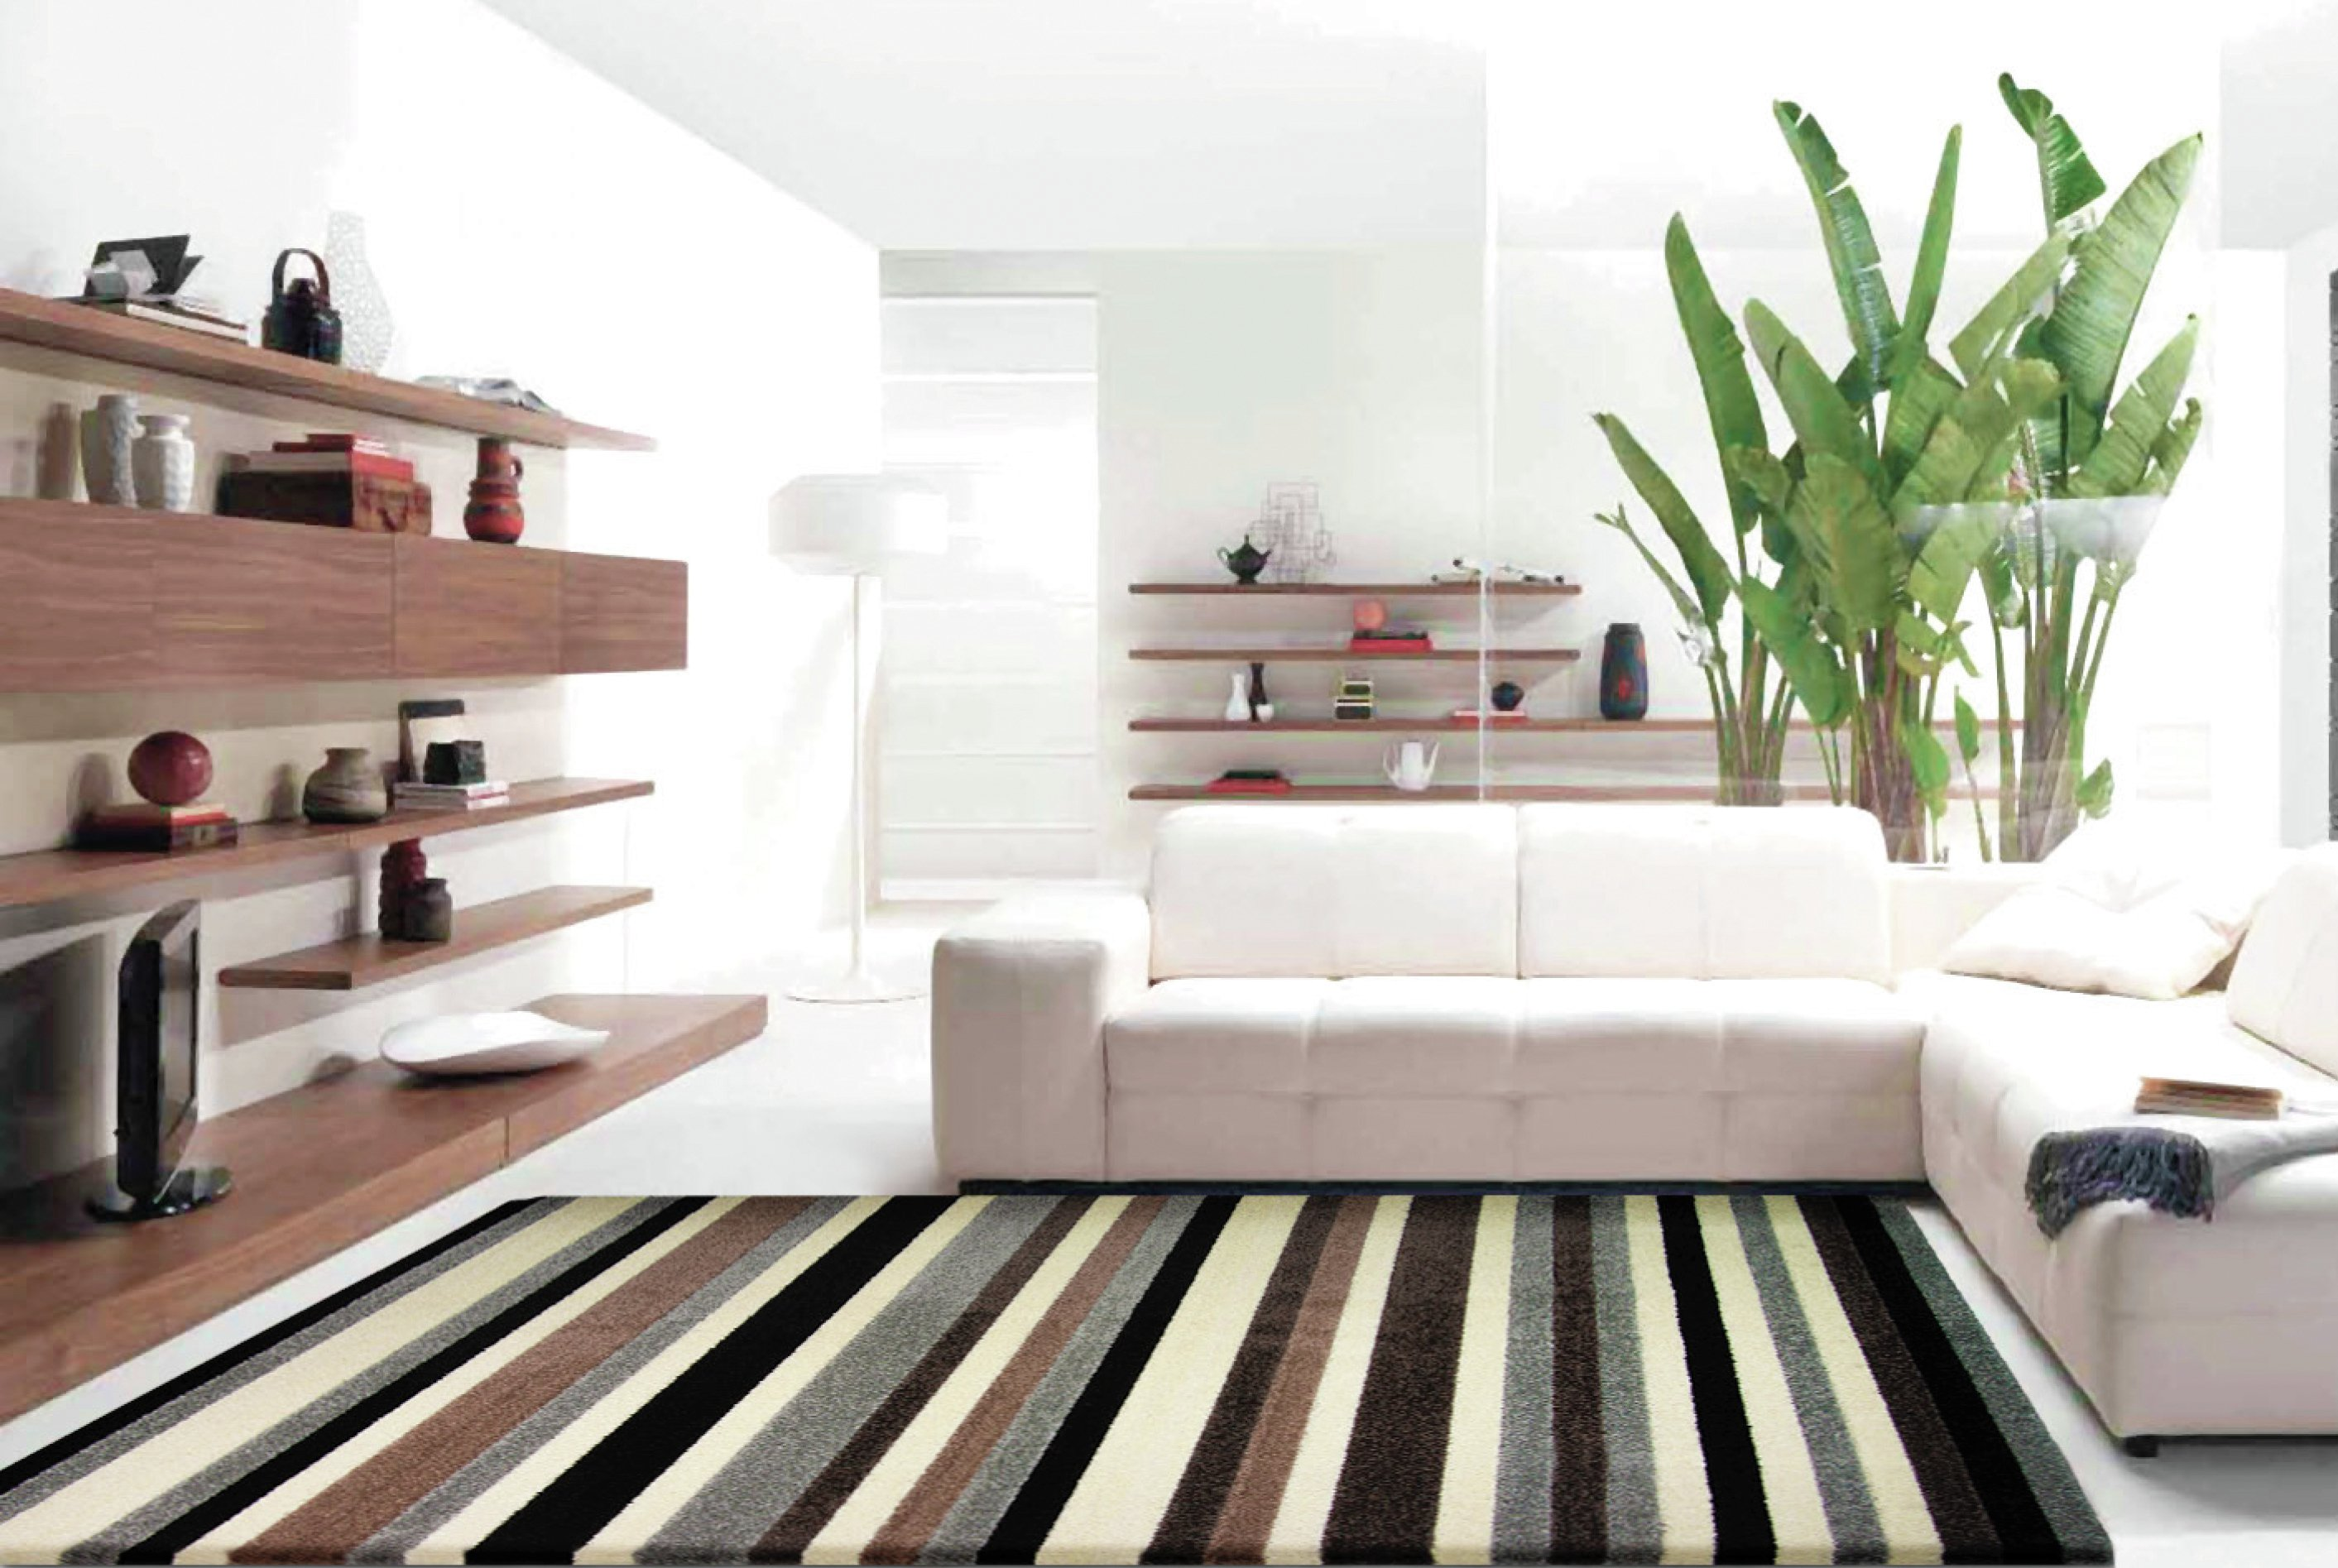 Image of Linea Stripe Washable Rug - 200 x 140cm - Natural.